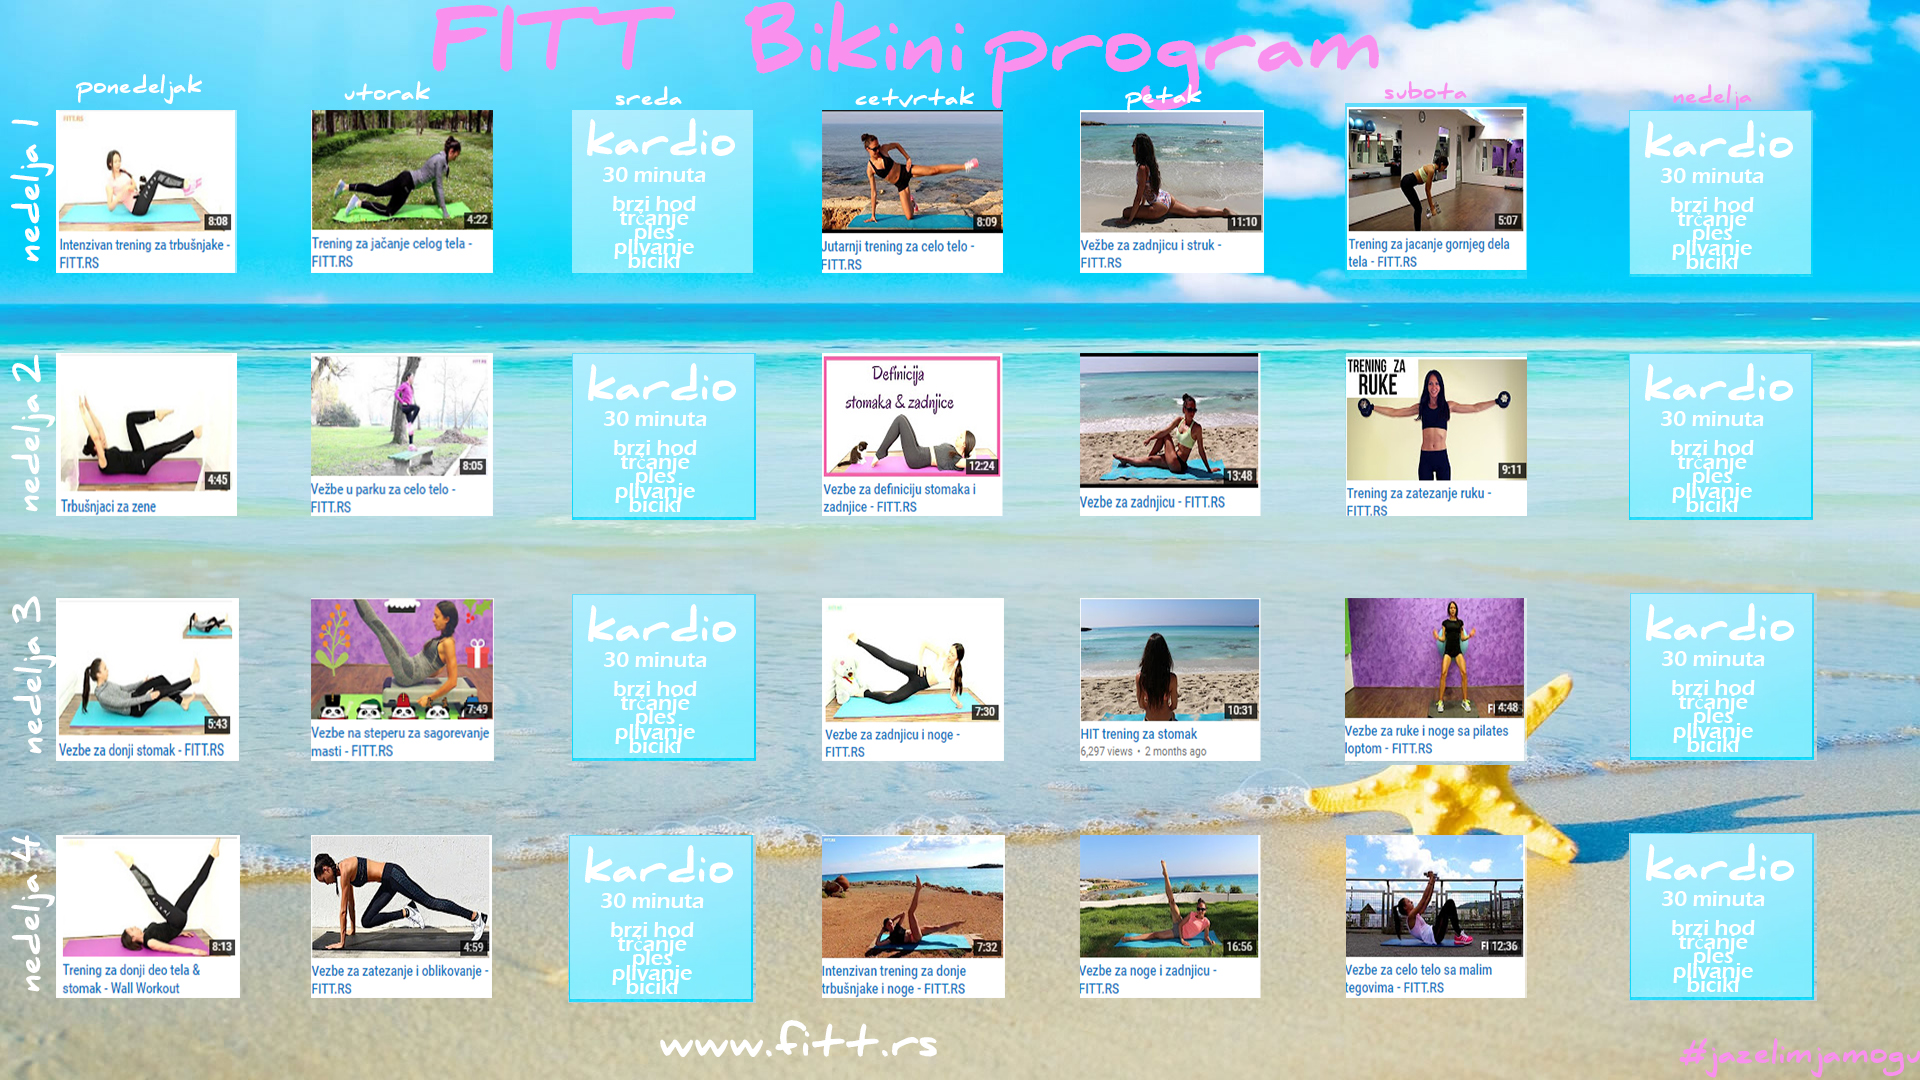 FITT bikini program